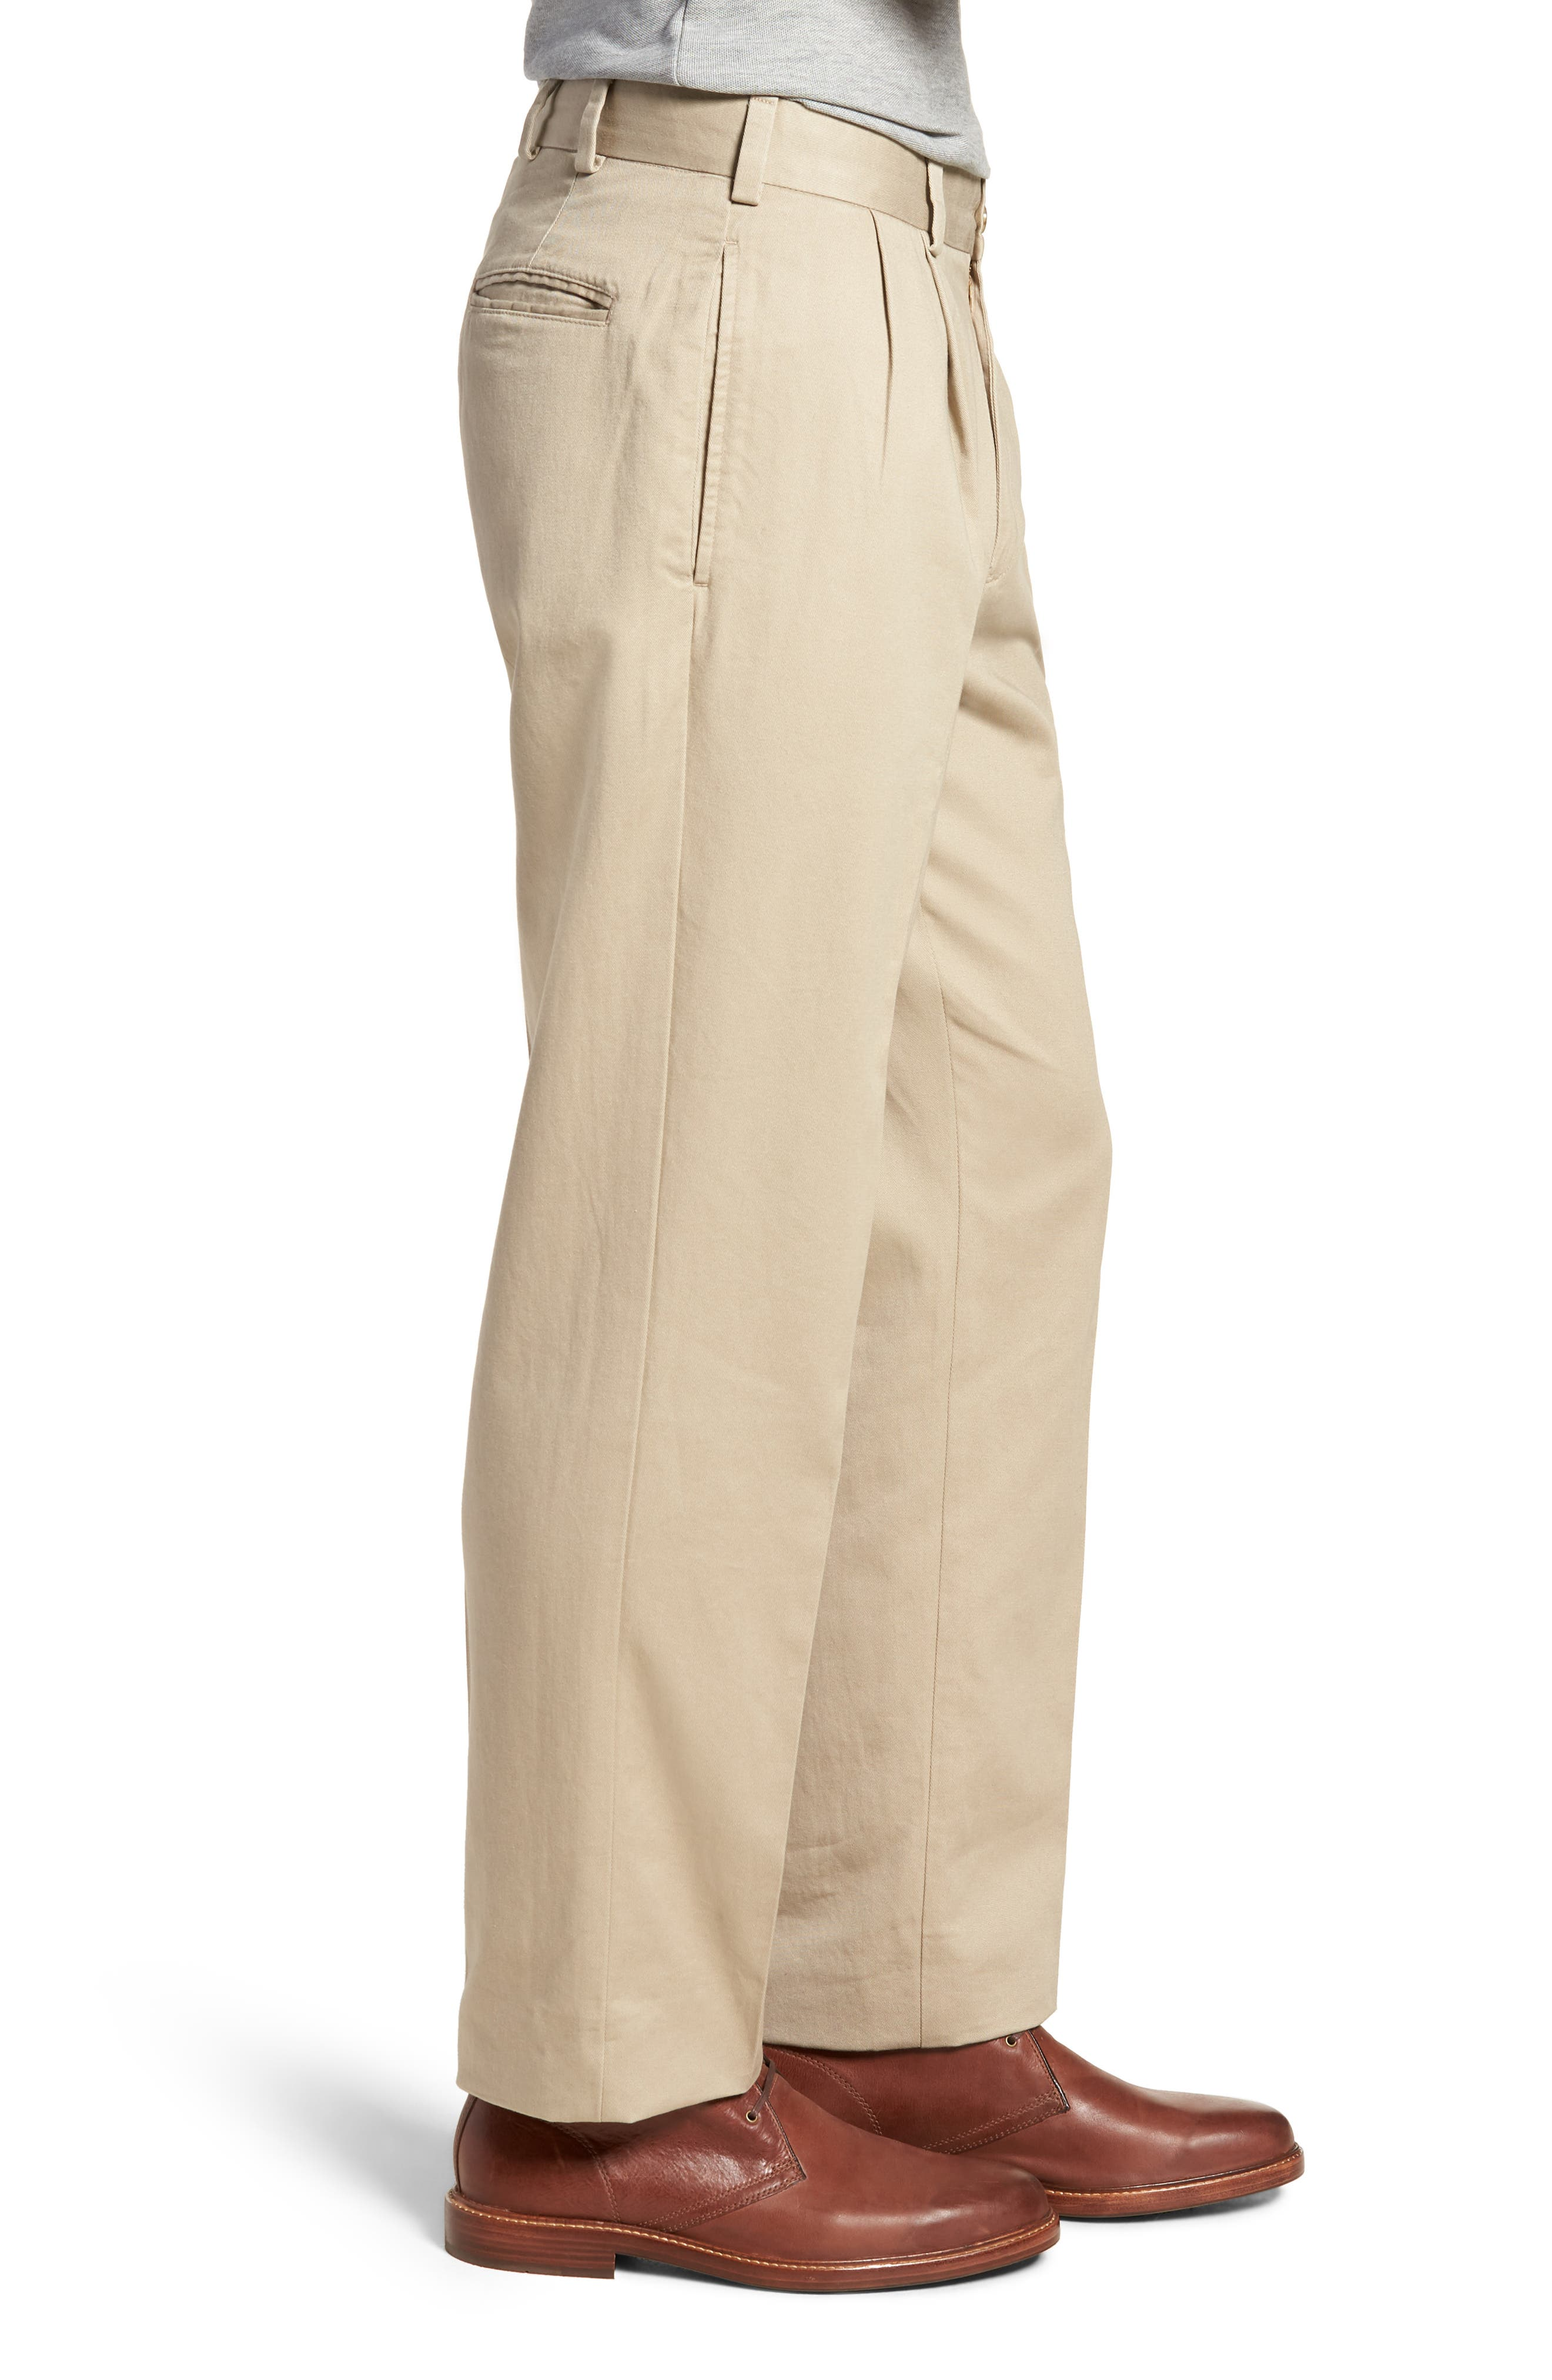 M2 Classic Fit Pleated Vintage Twill Pants,                             Alternate thumbnail 3, color,                             250